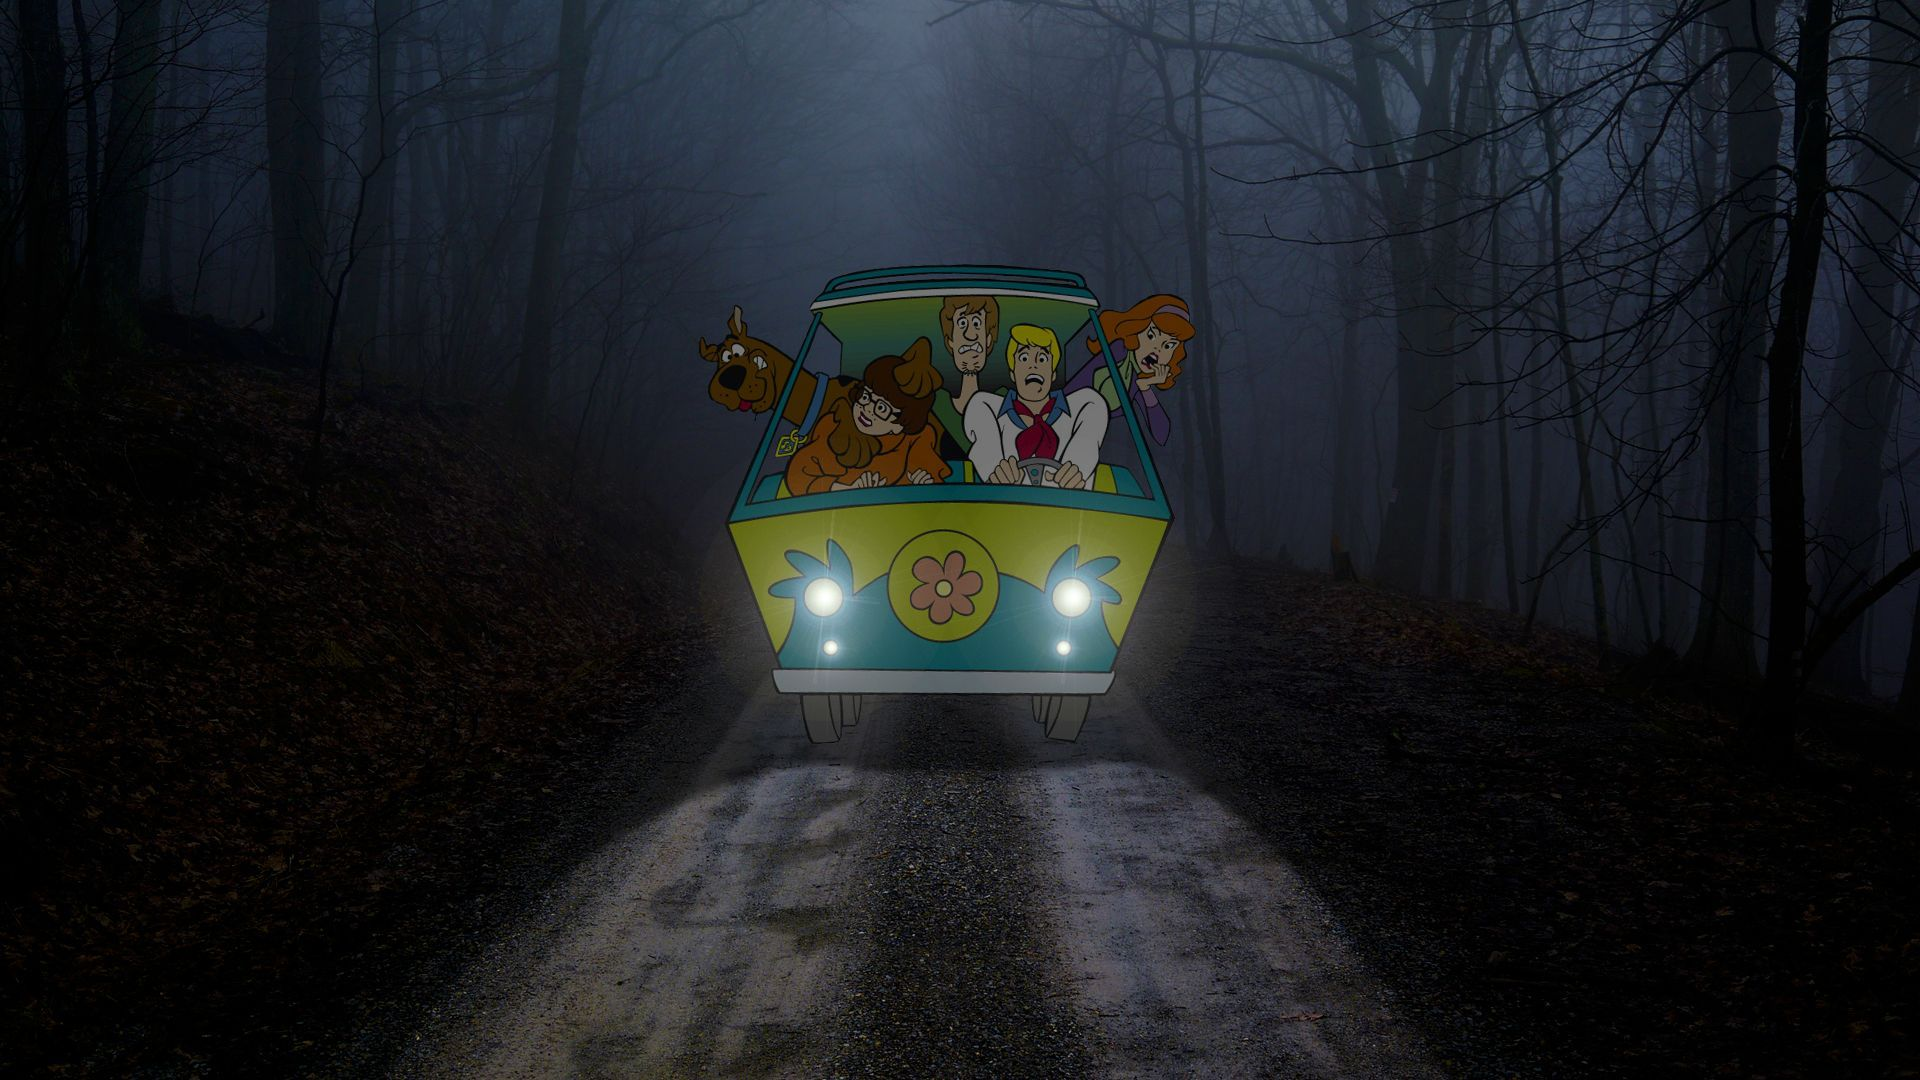 35 Scooby doo Characters Wallpaper for PC Halloween